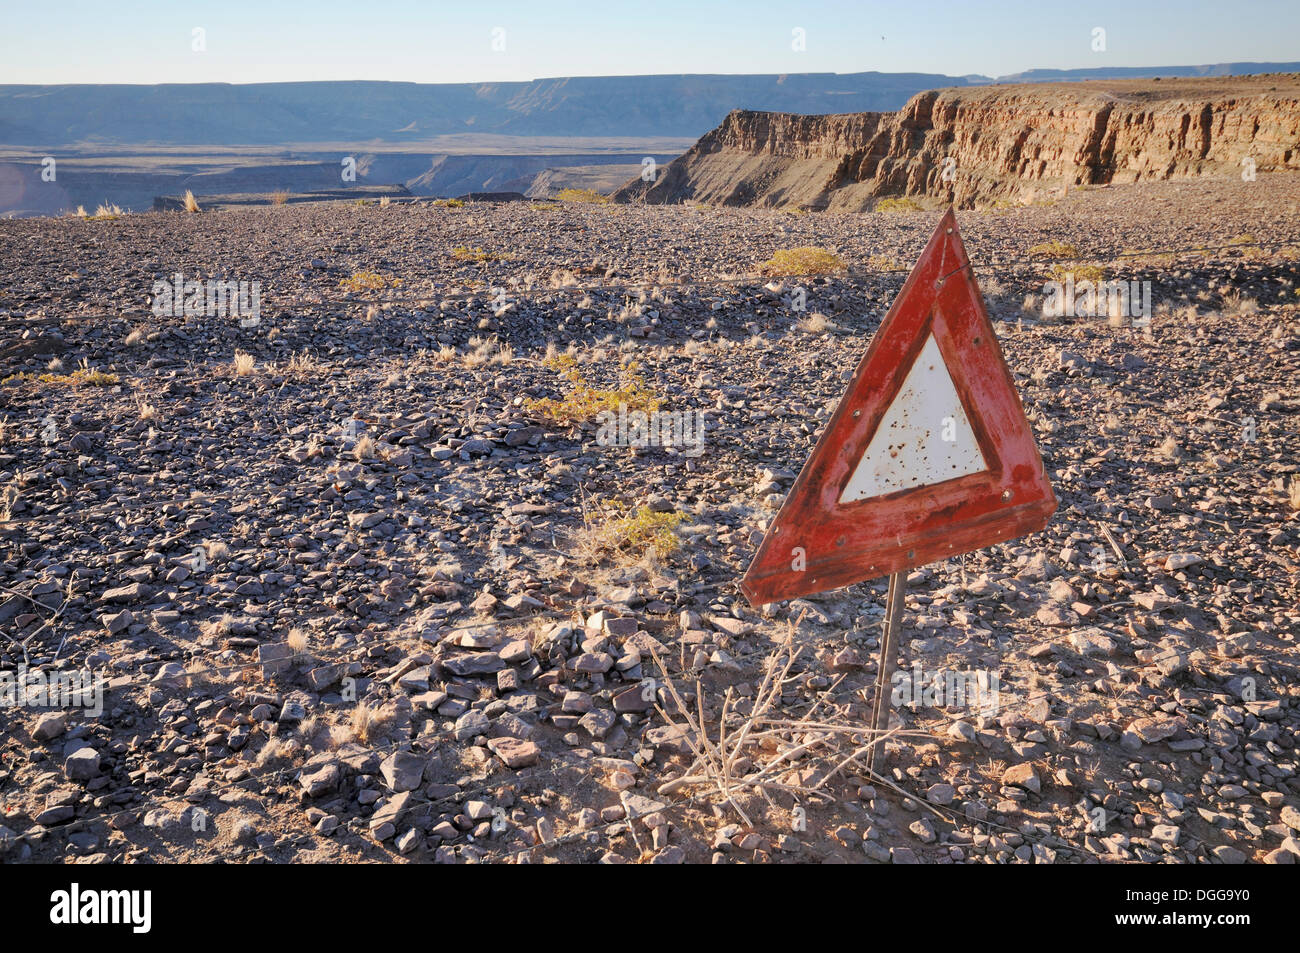 Barrier, exclusion zone, sign, Fish River Canyon, Namibia - Stock Image